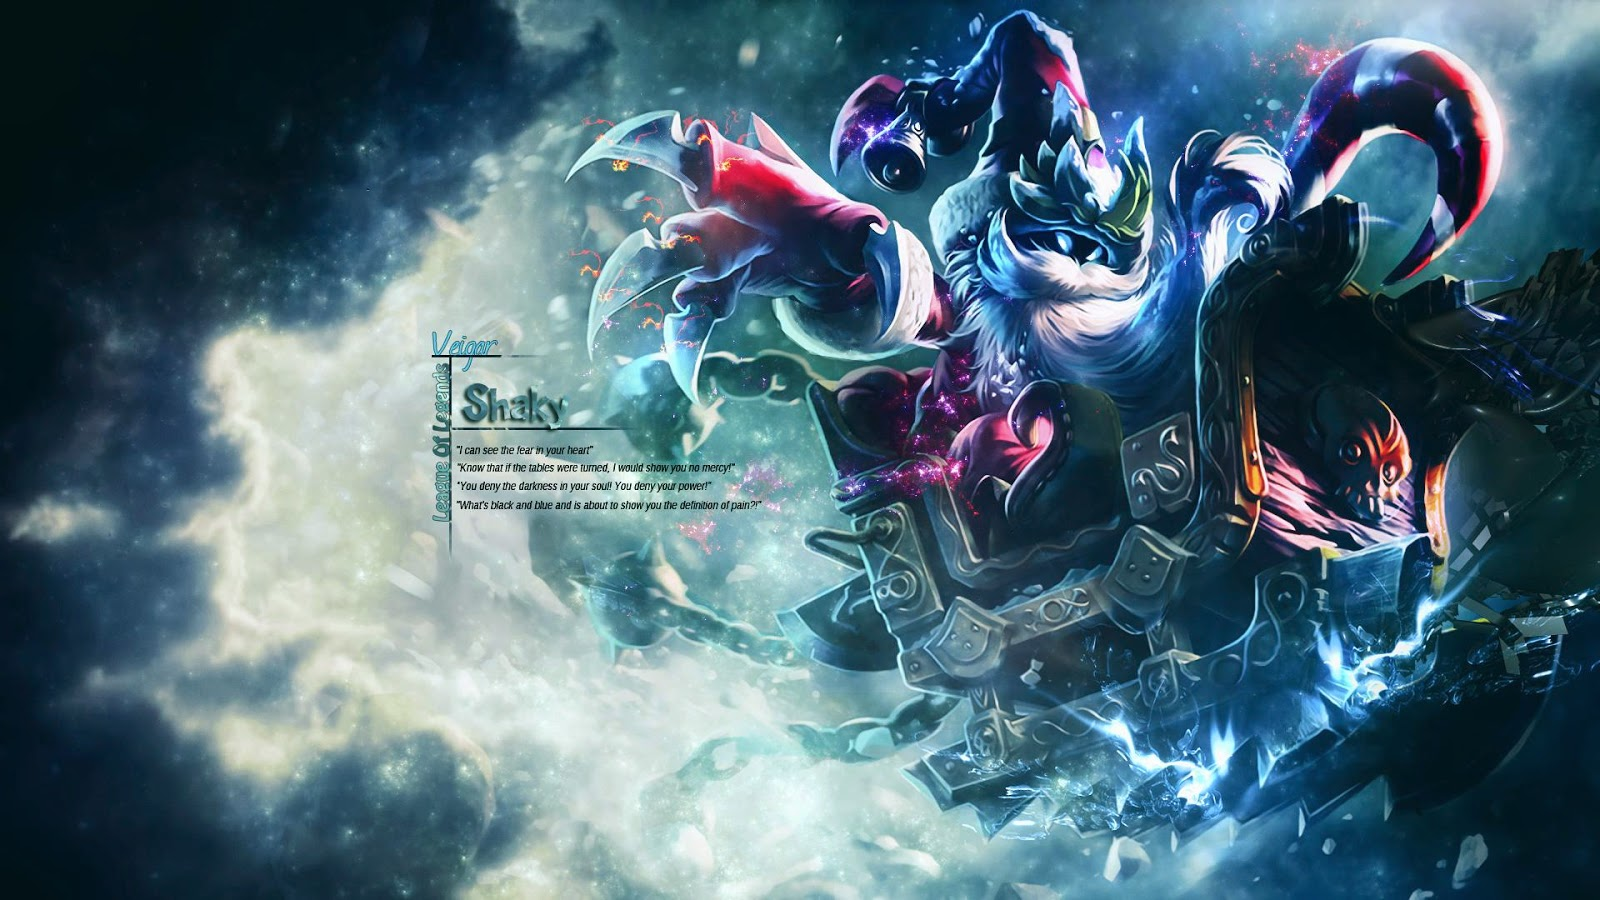 Veigar League of Legends Wallpaper, Veigar Desktop Wallpaper